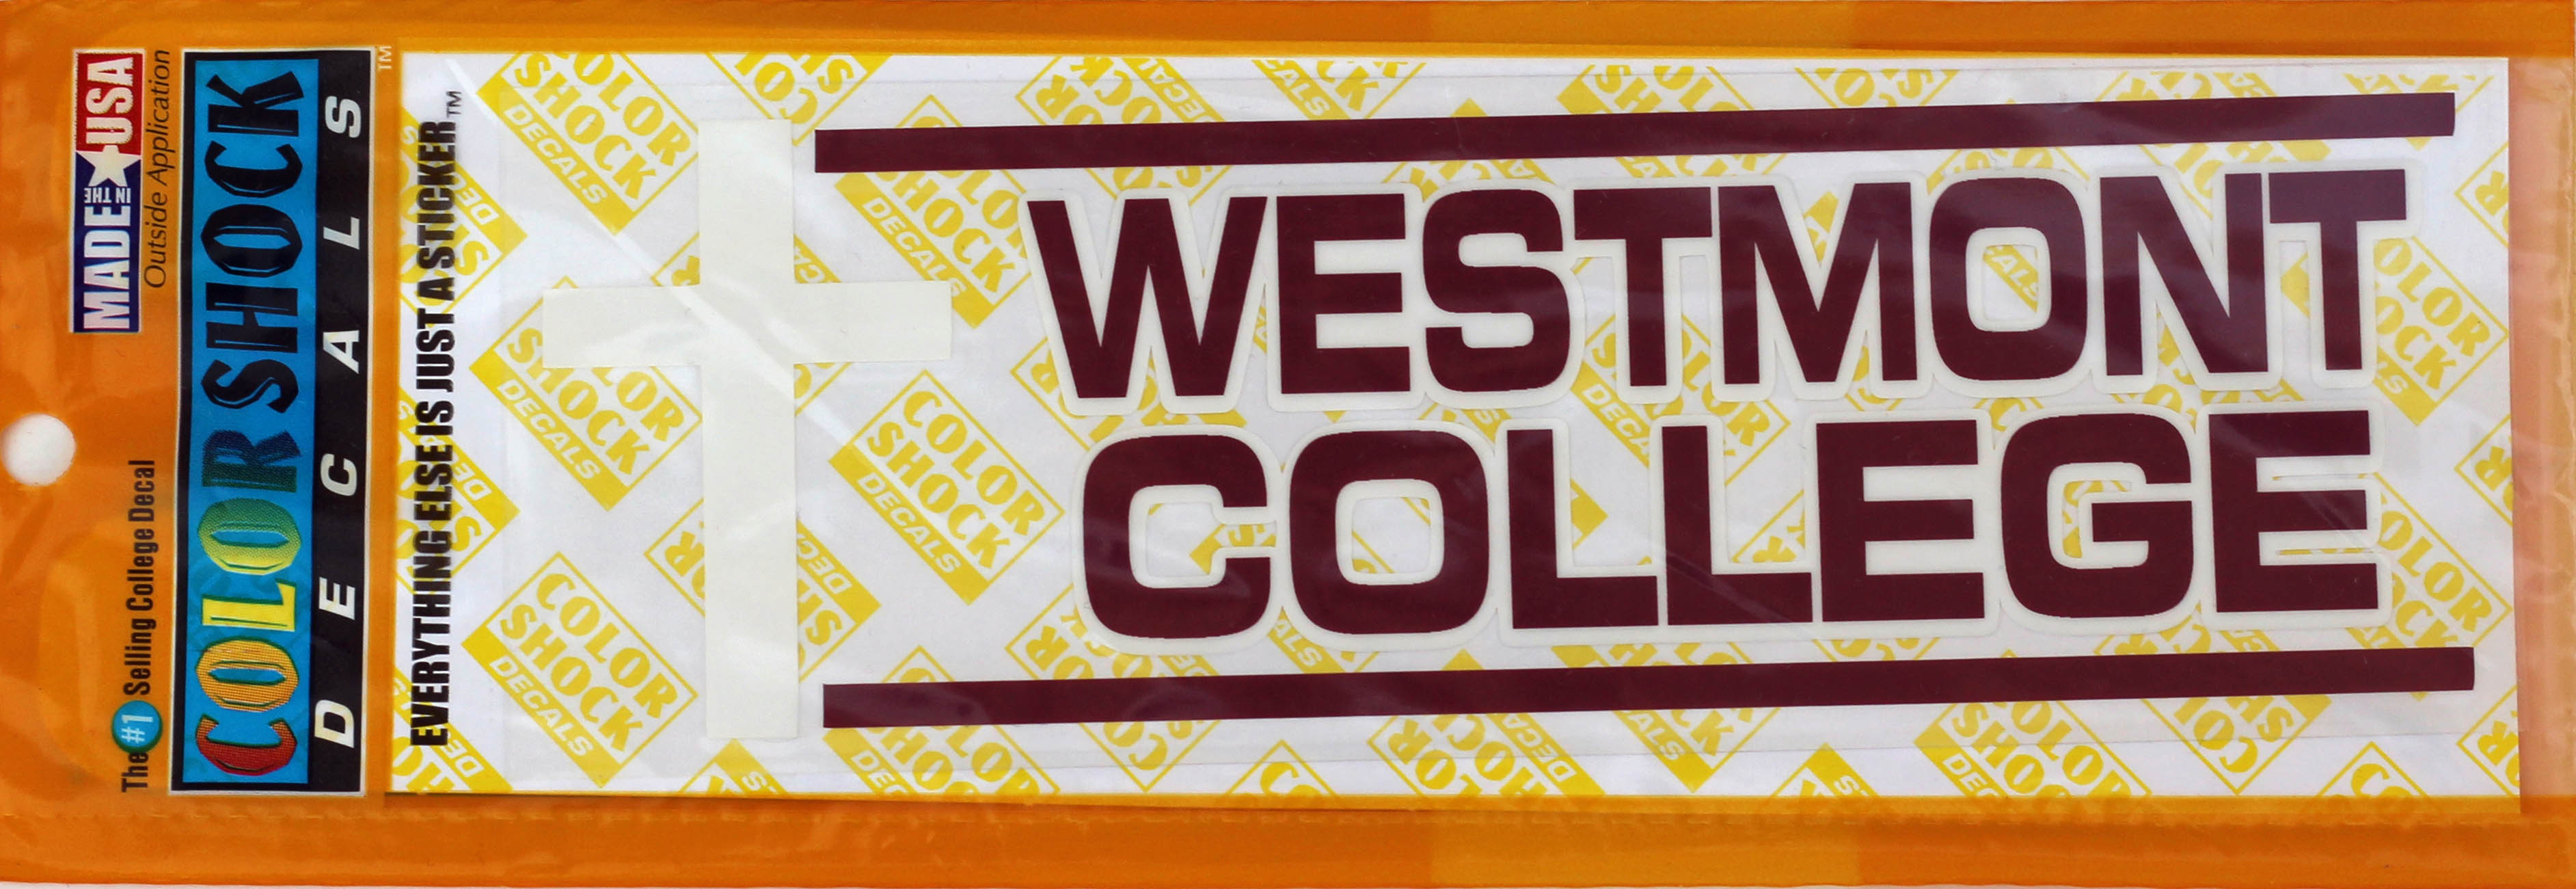 Image for the Westmont College with Cross decal product